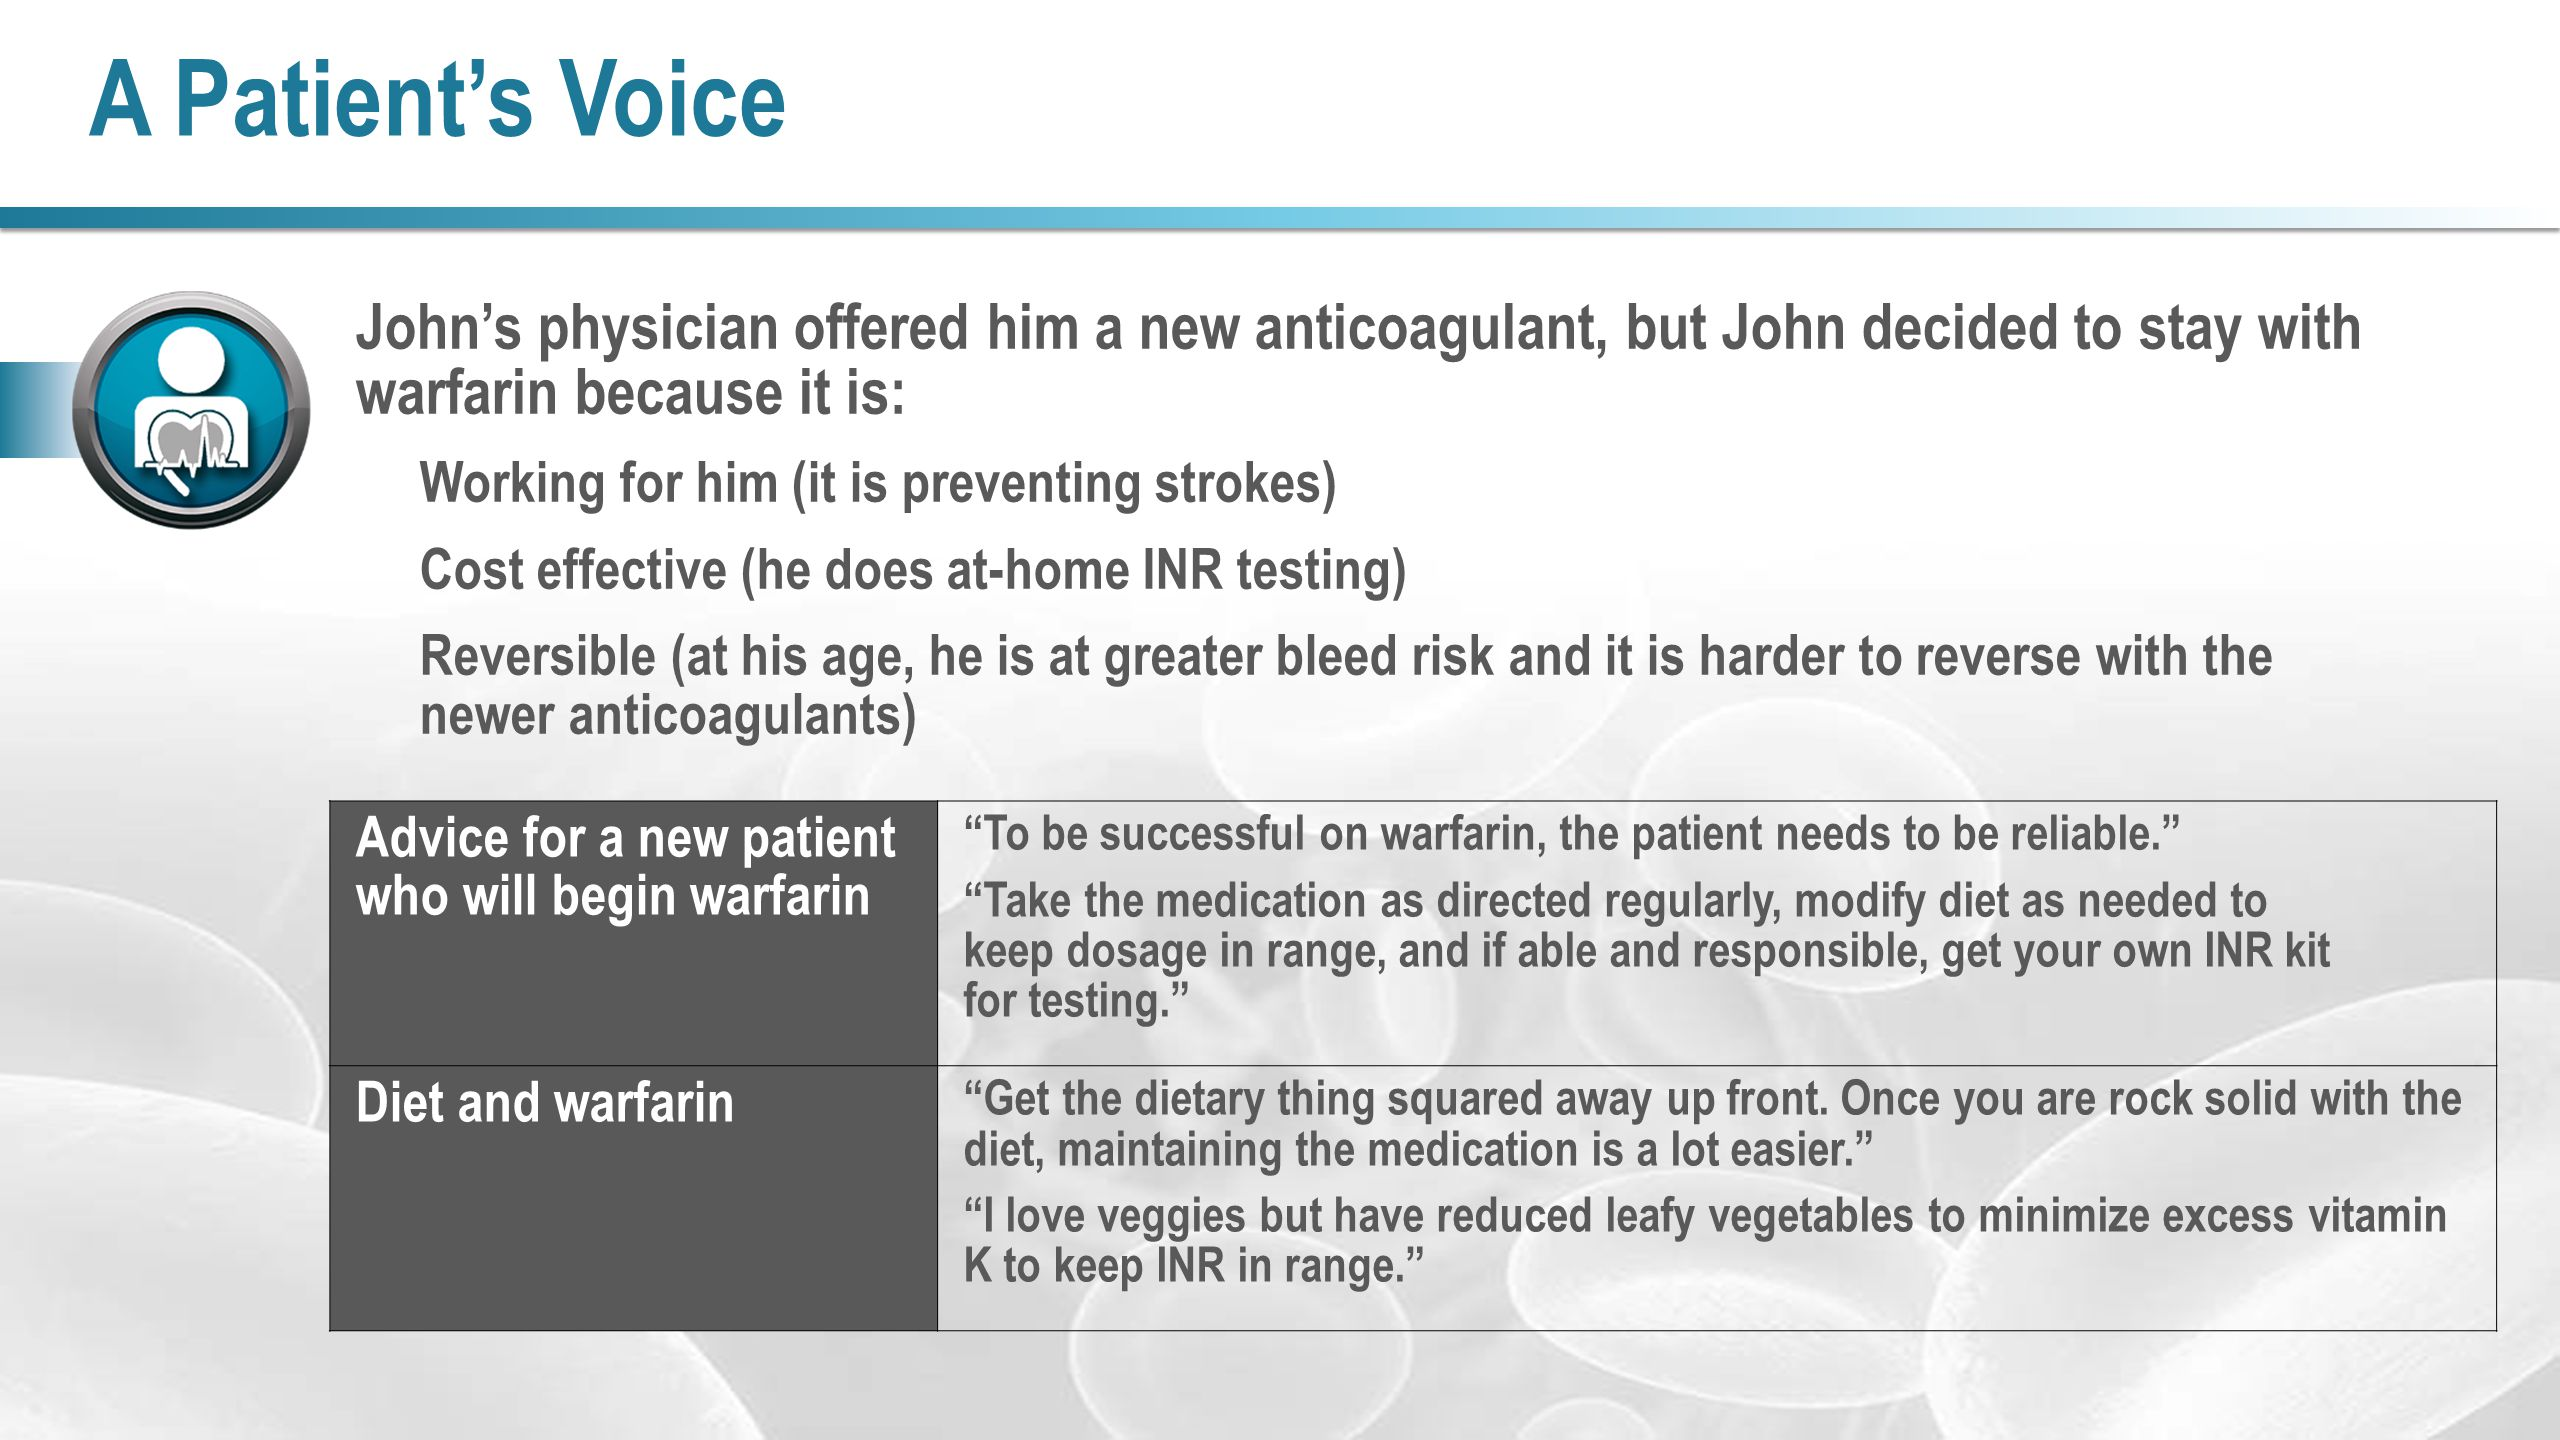 A Patient's Voice John's physician offered him a new anticoagulant, but John decided to stay with warfarin because it is: Working for him (it is preve